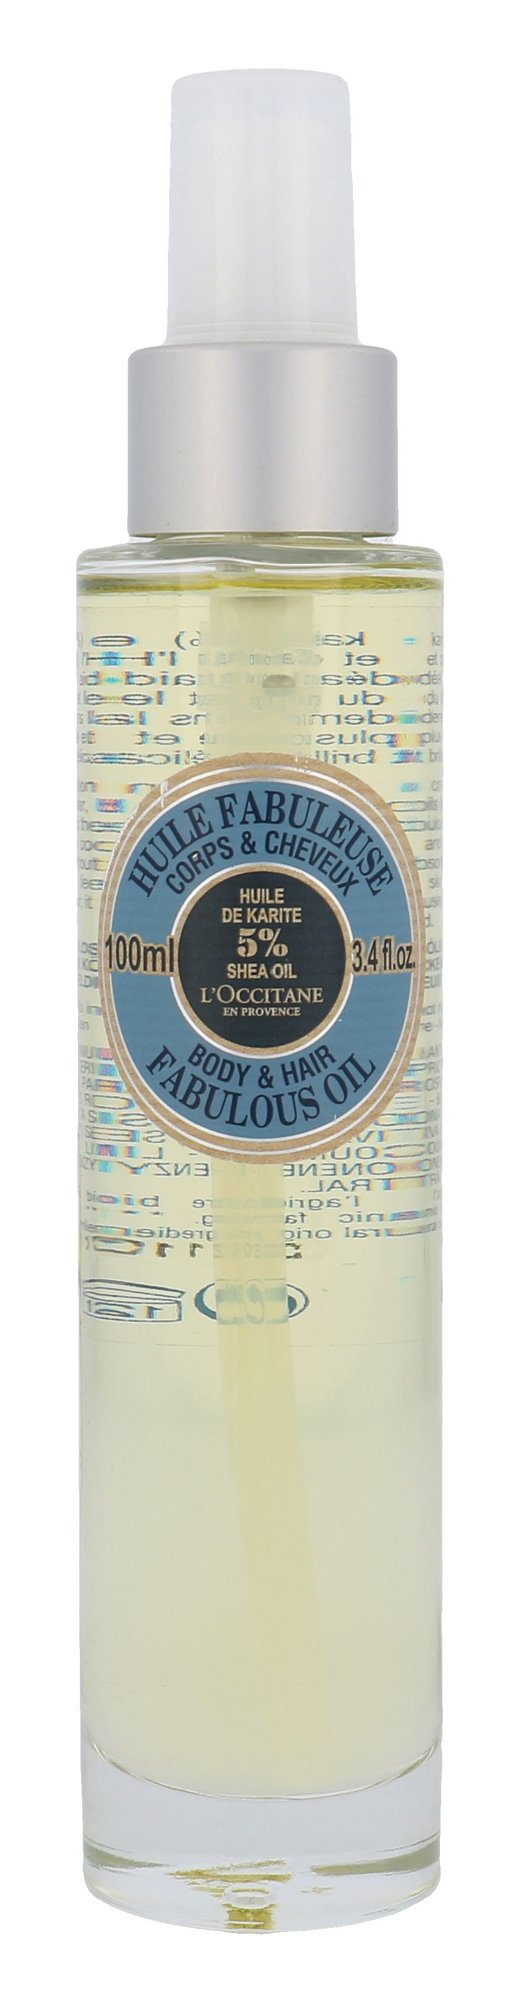 L´Occitane Shea Butter Cosmetic 100ml